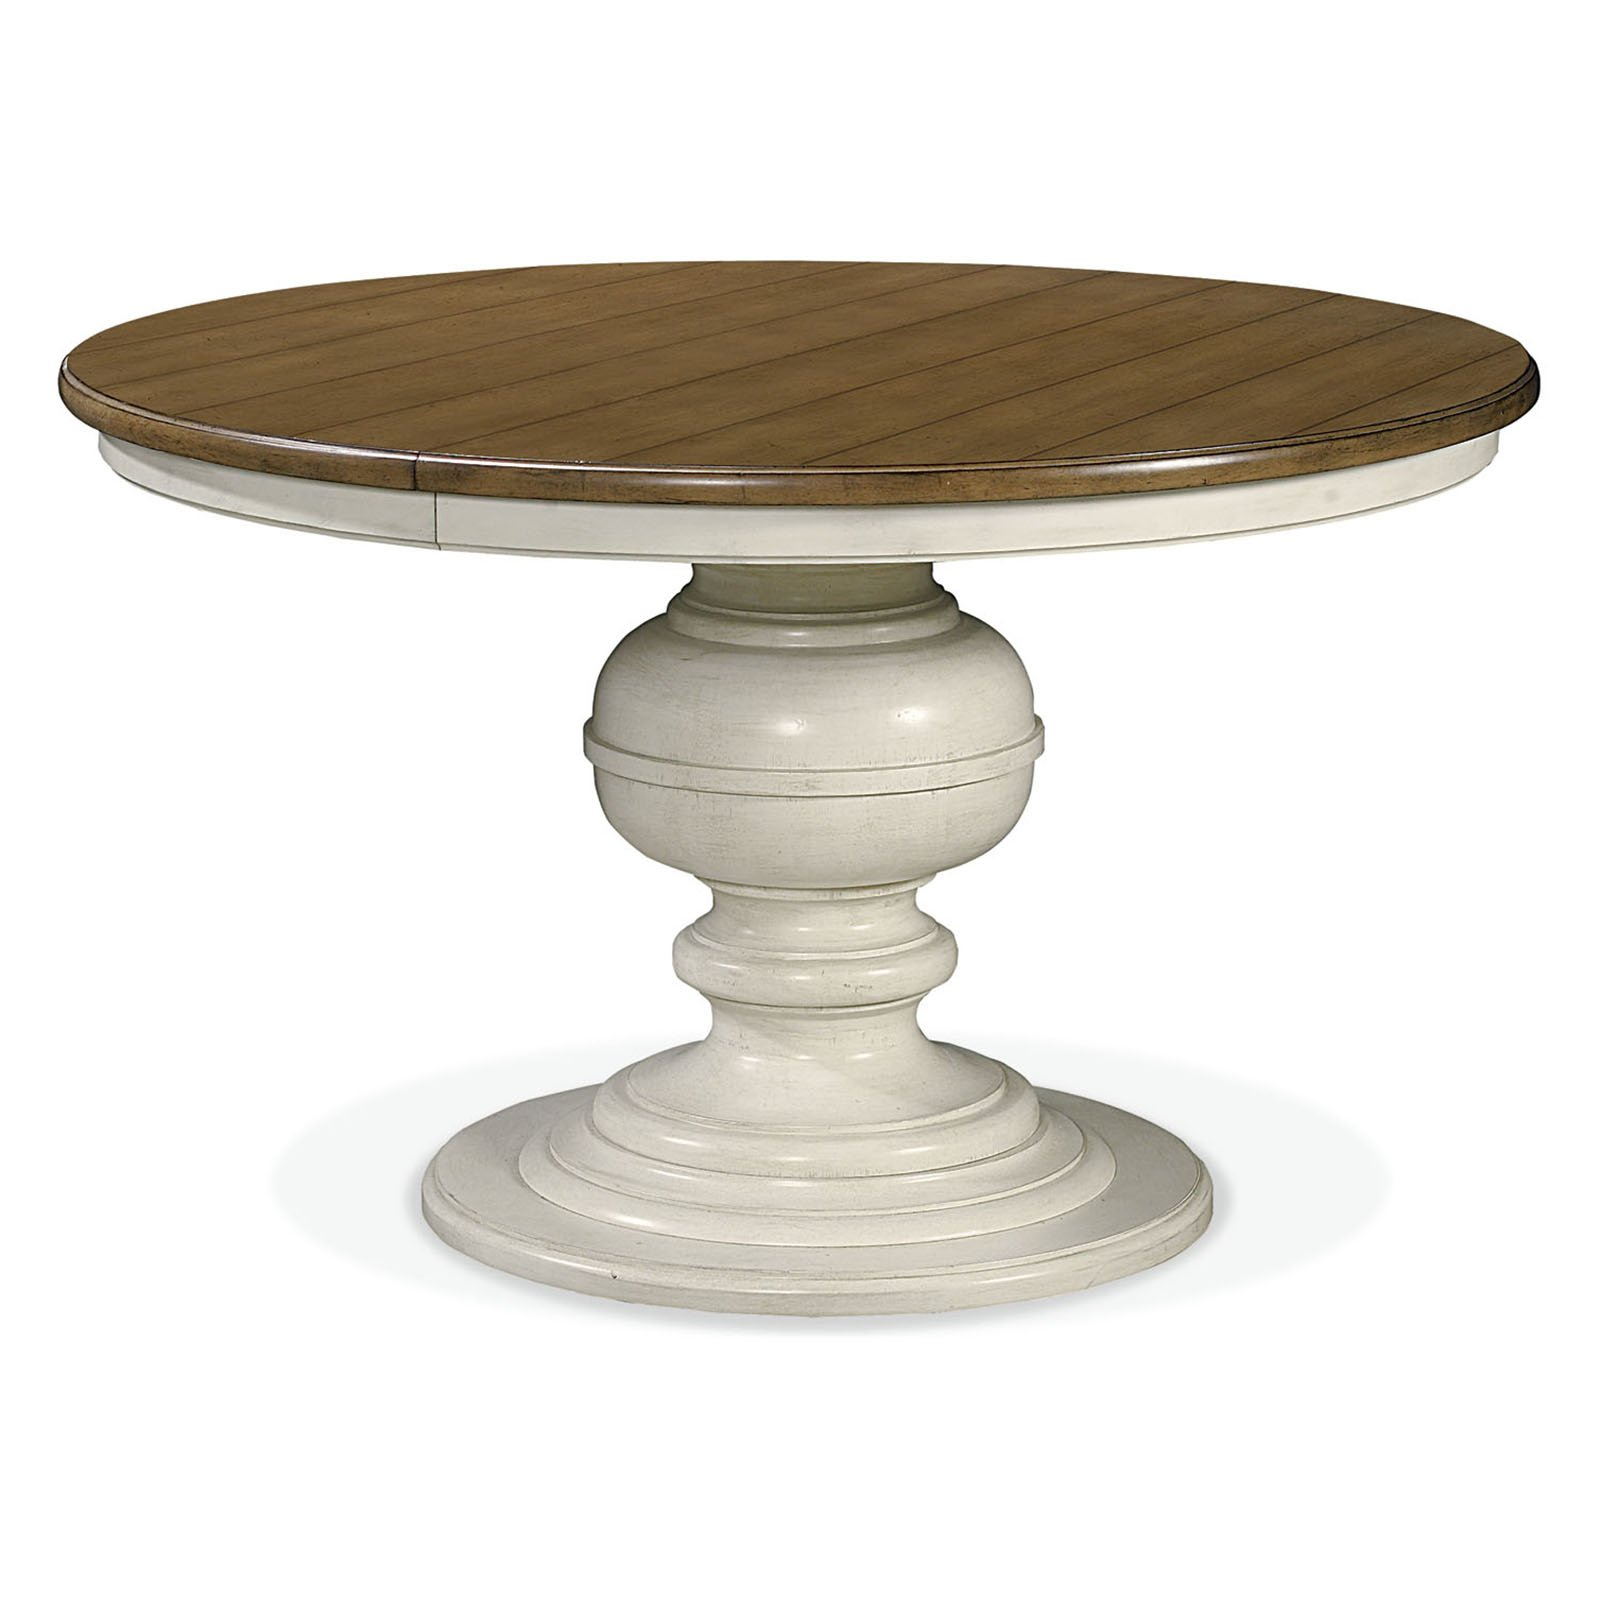 round foyer table wood with stylish traditional hall furniture pedestal charming white painting and brown top design awesome type several materials accent for fossil stone